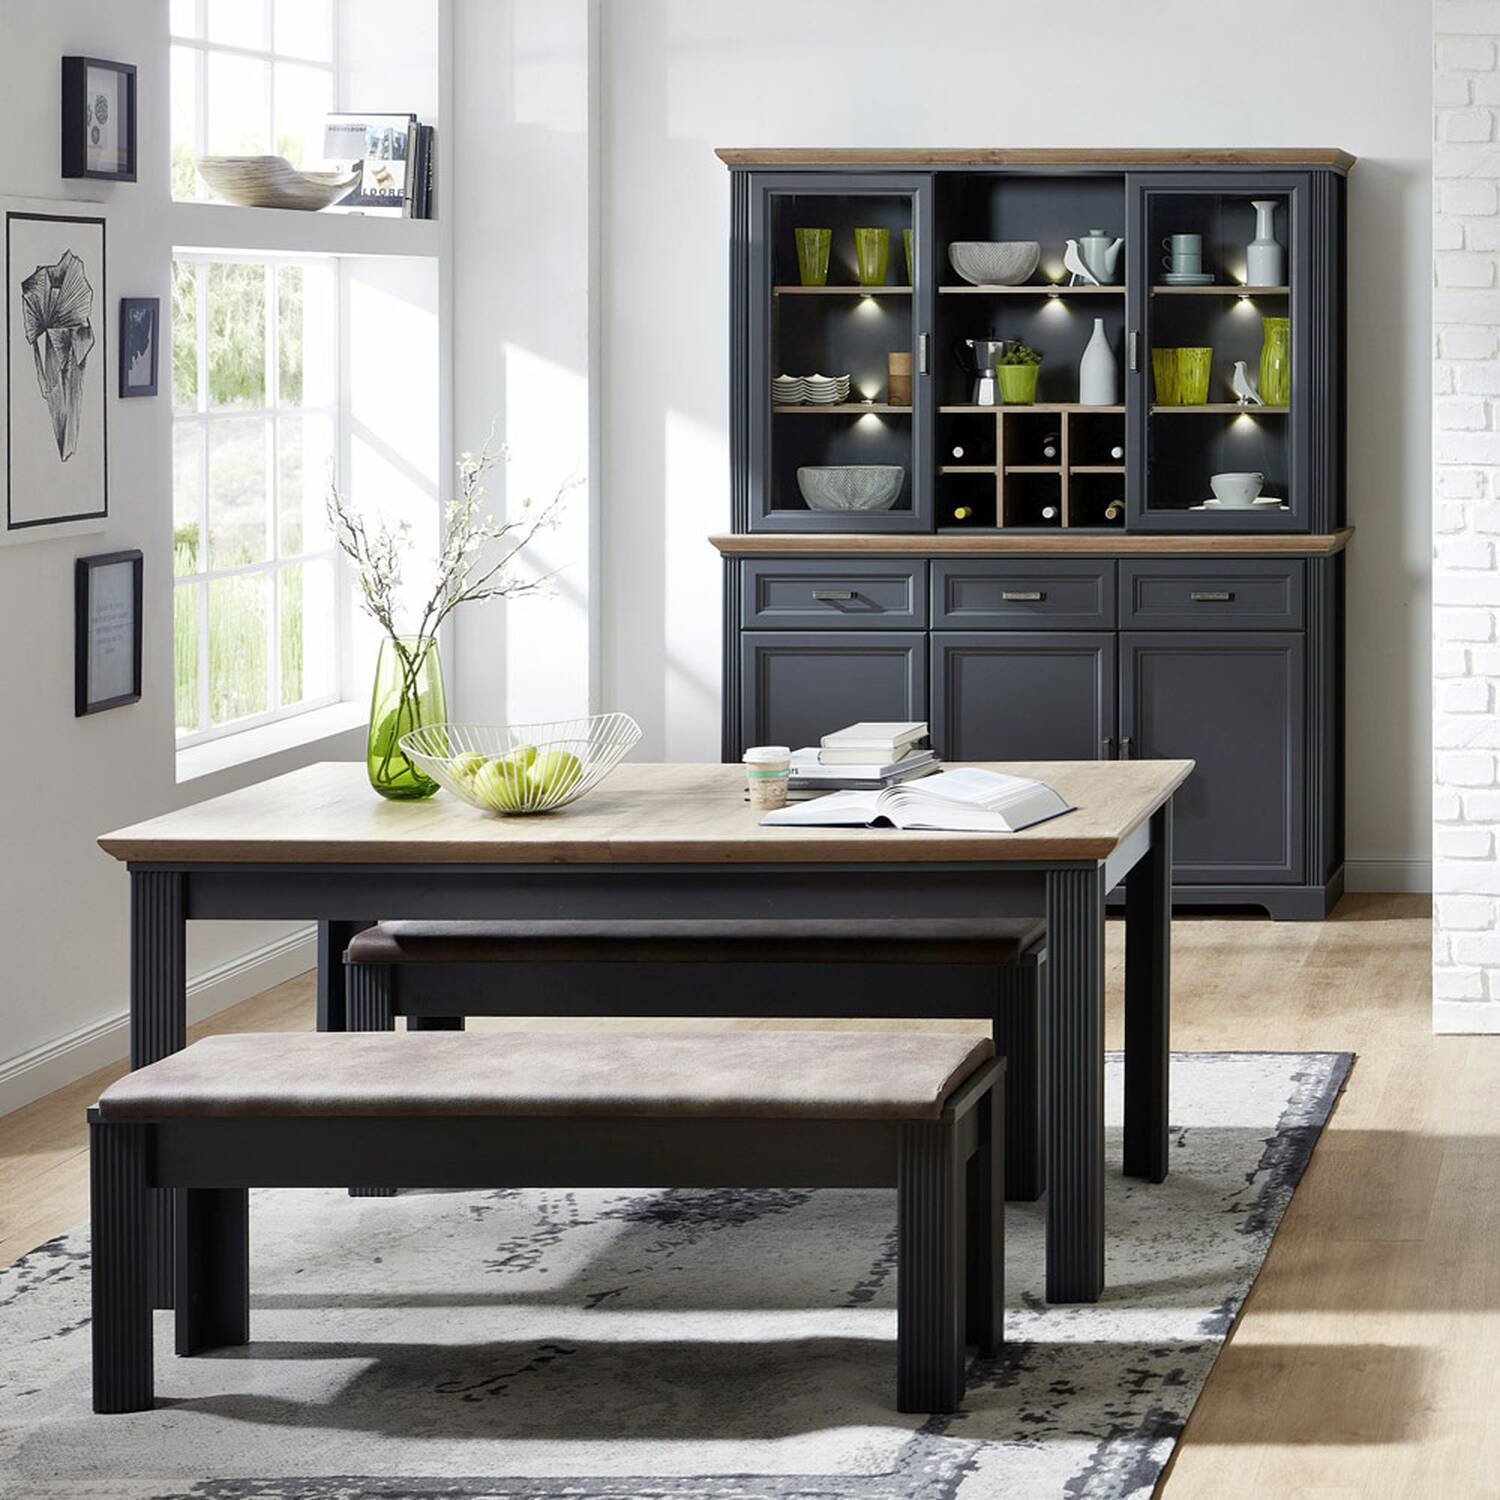 Esszimmer Buffet Esszimmer Buffet Tische Homeautodesign Com 19 Beaufiful